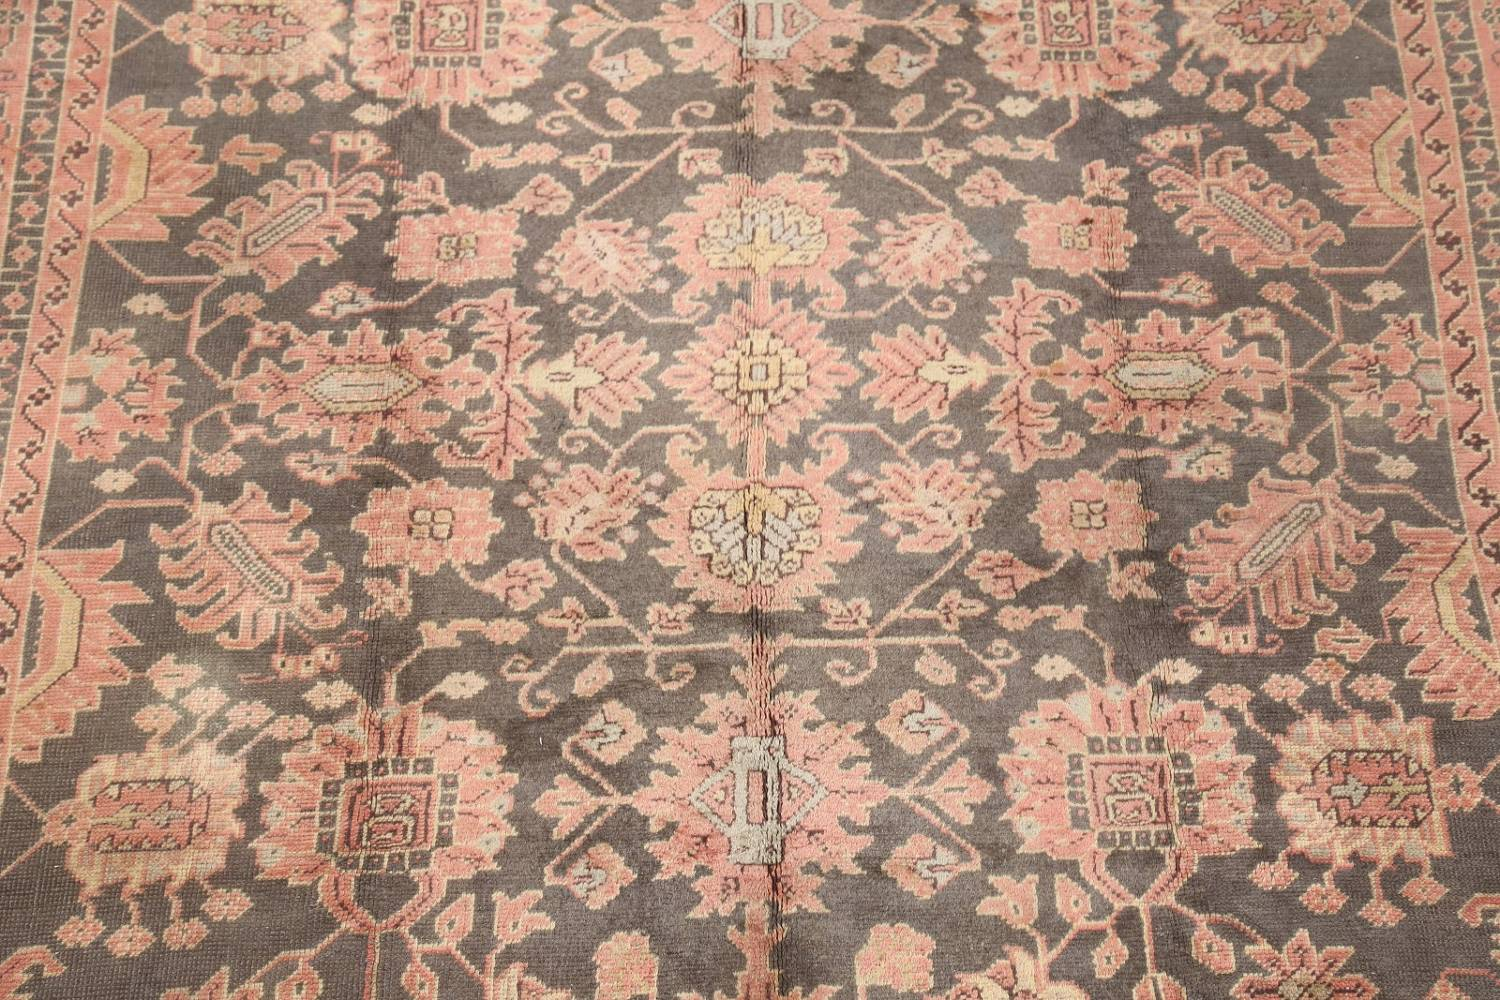 Fossil Black All-Over Muted Antique 9x11 Oushak Turkish Oriental Area Rug image 6